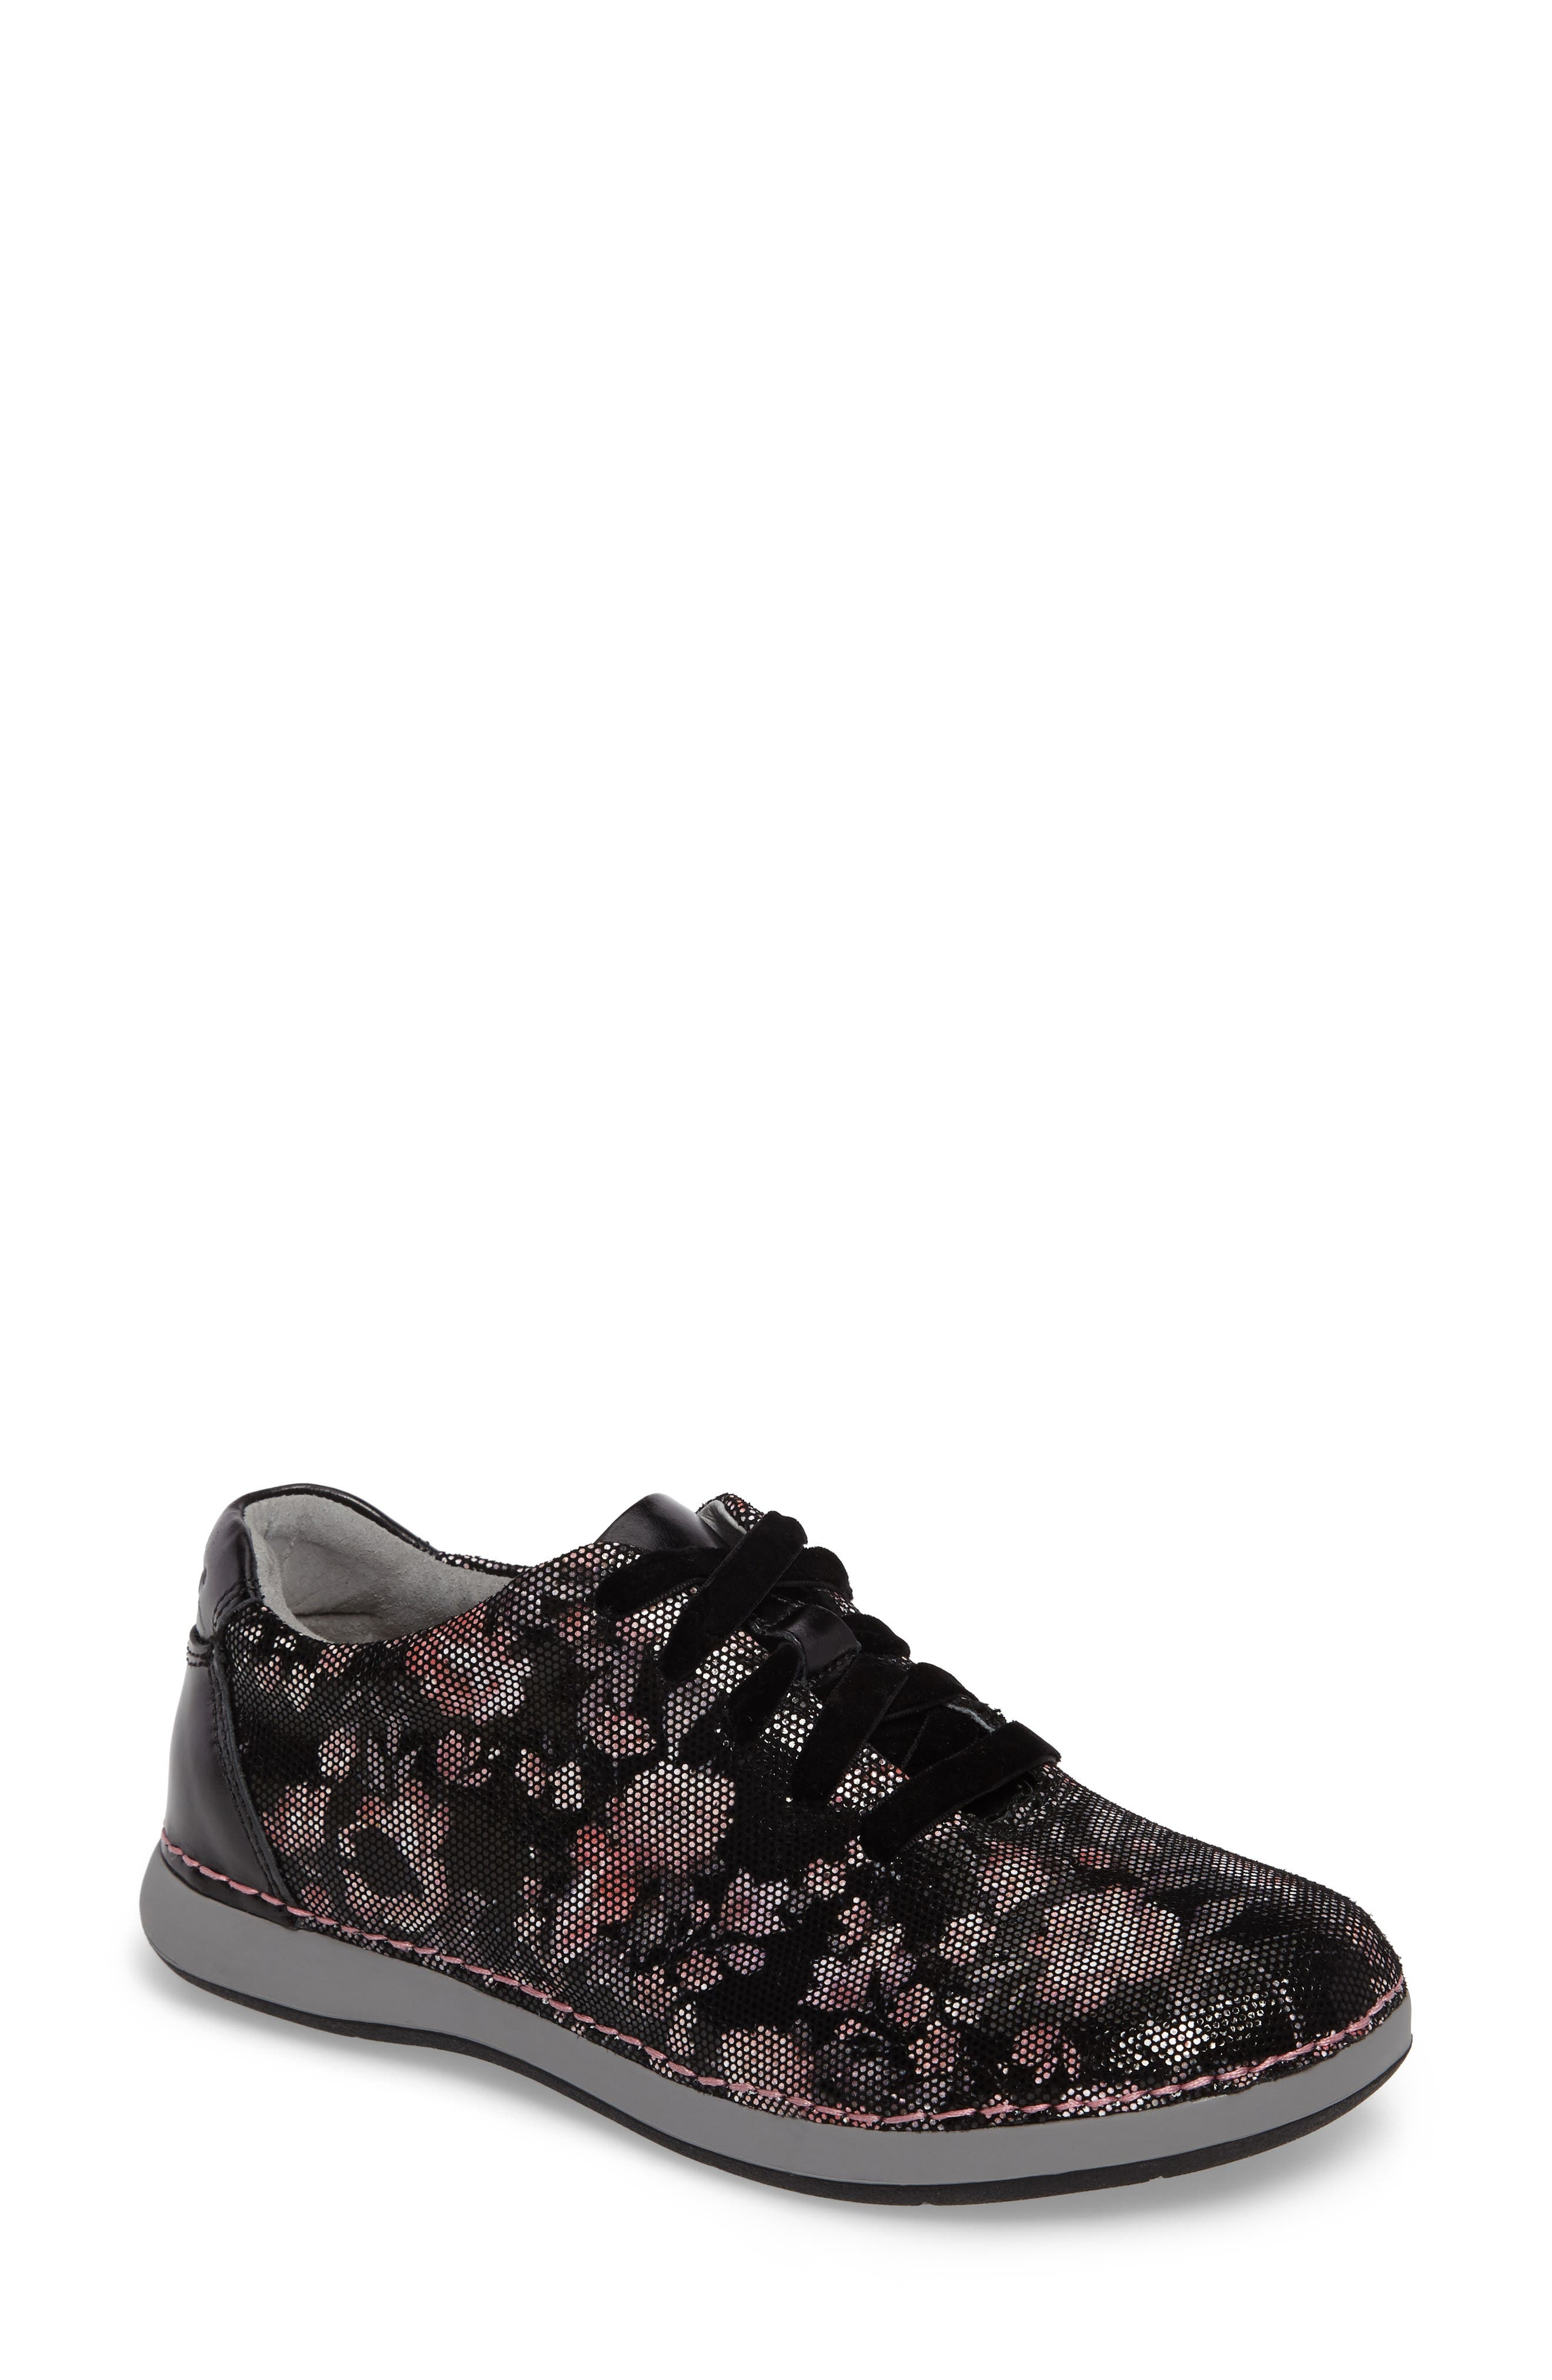 Essence Lace-Up Leather Oxford,                             Main thumbnail 1, color,                             001